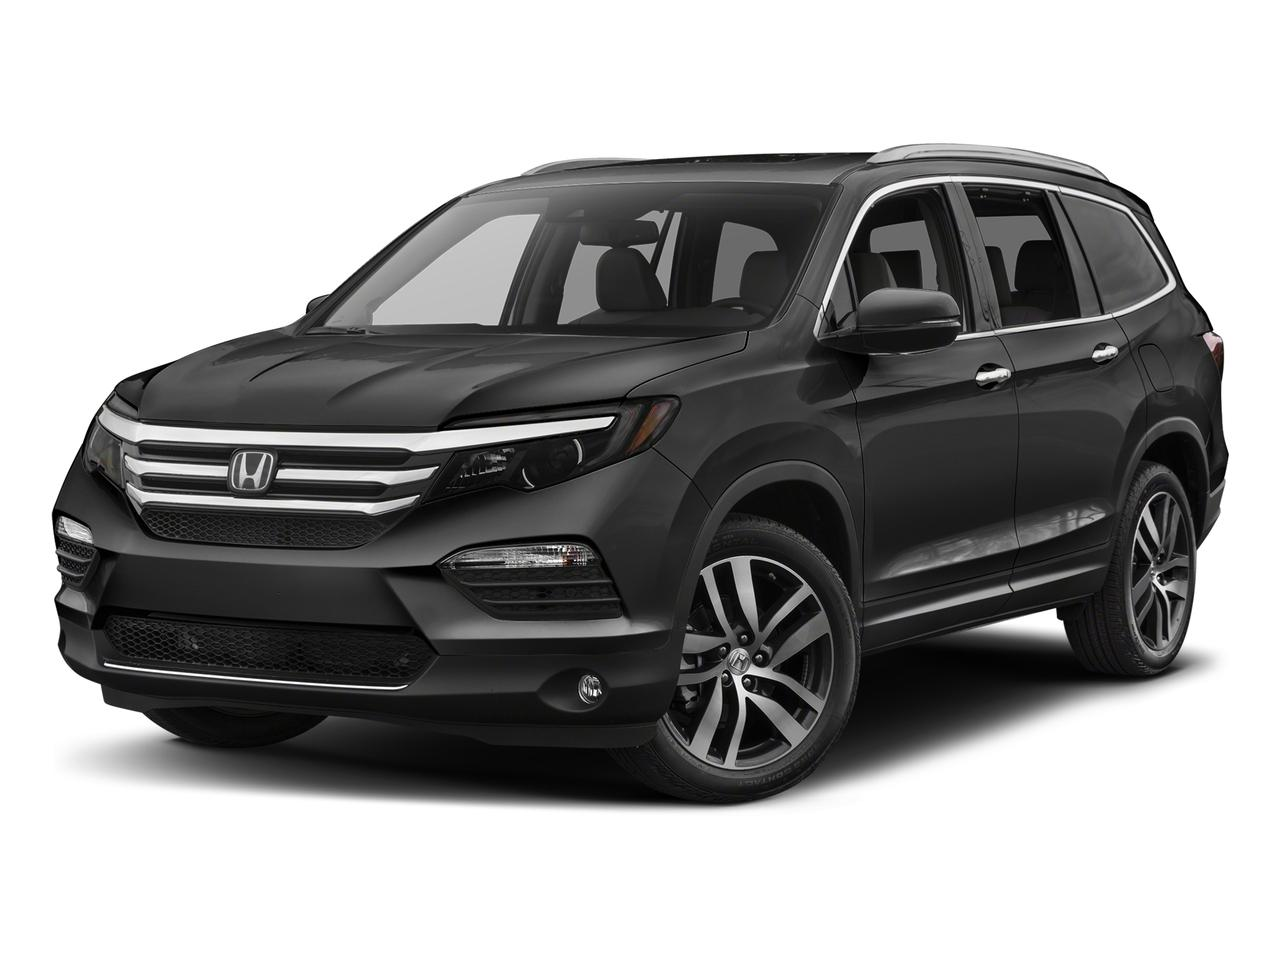 2017 Honda Pilot Vehicle Photo in Portland, OR 97225